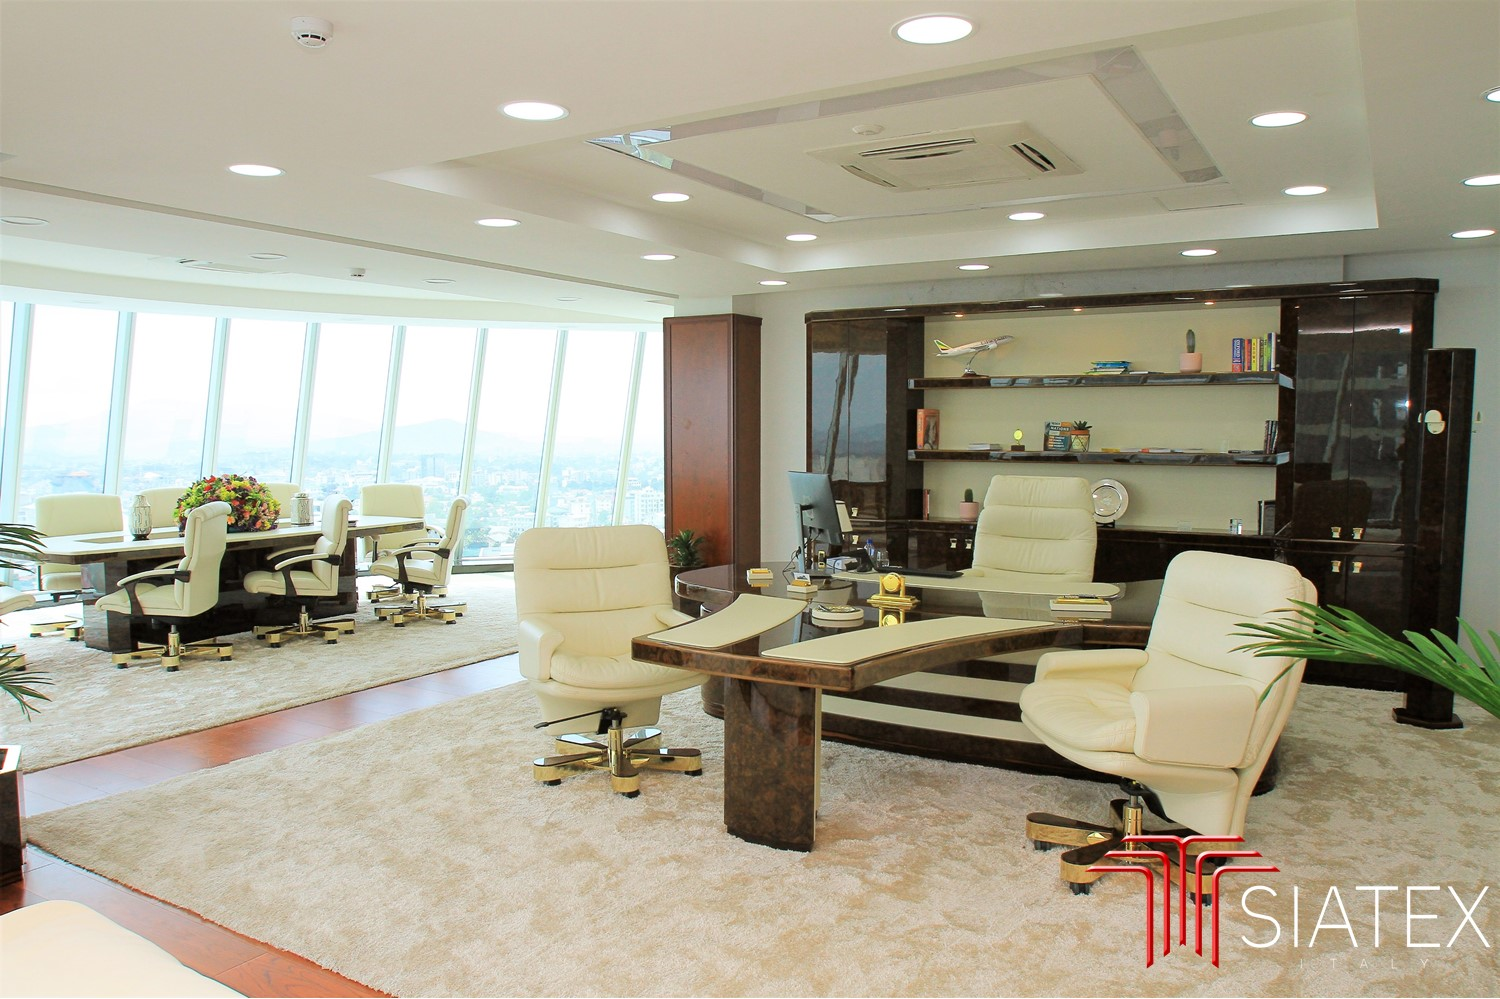 3.office furniture project_luxury ceo desk chairs and bookcase (1)